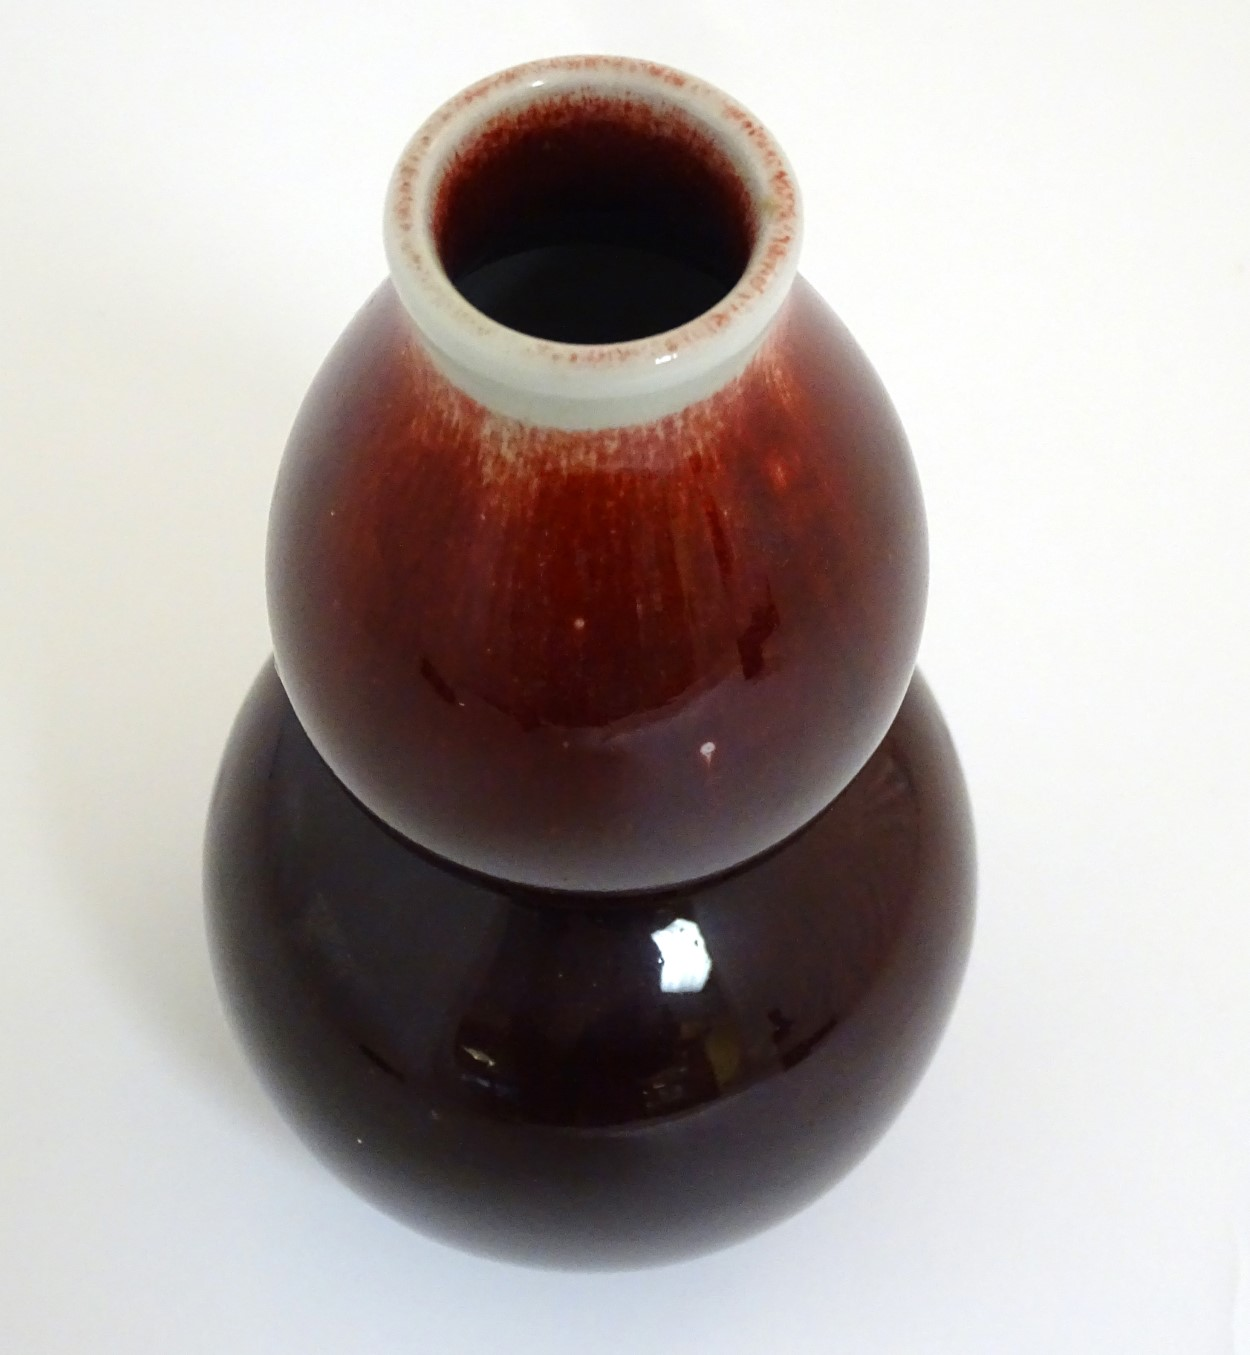 Lot 2 - A Chinese sang-de-boeuf double gourd, high fired porcelain vase. Indistinct Chinese marking to base.